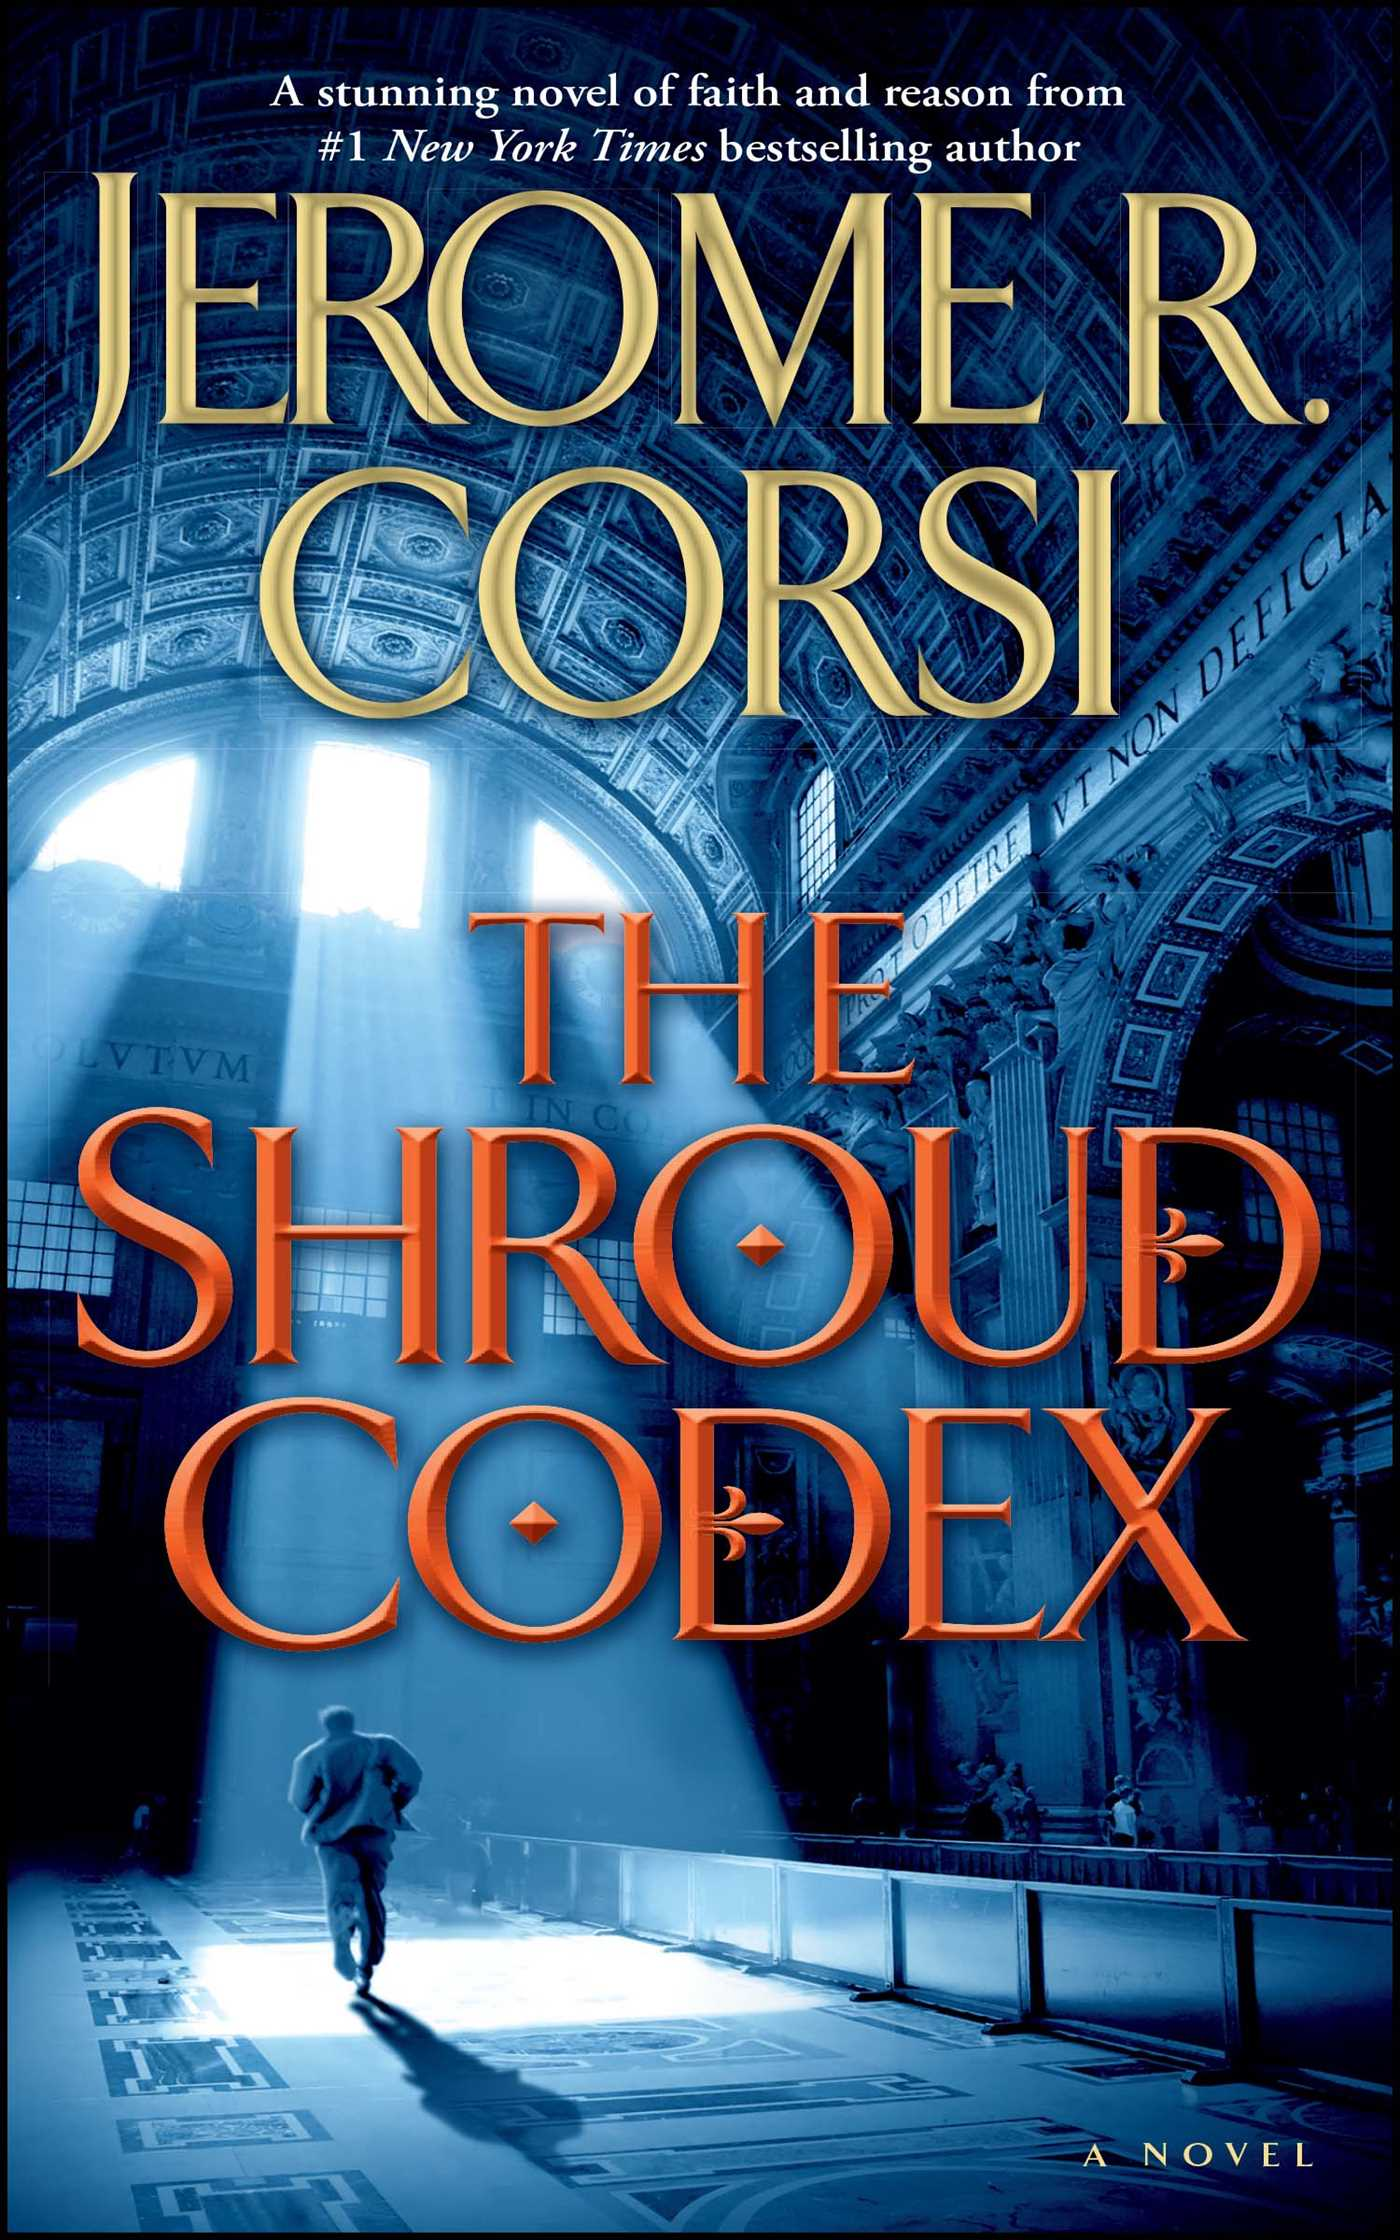 The shroud codex 9781439190456 hr